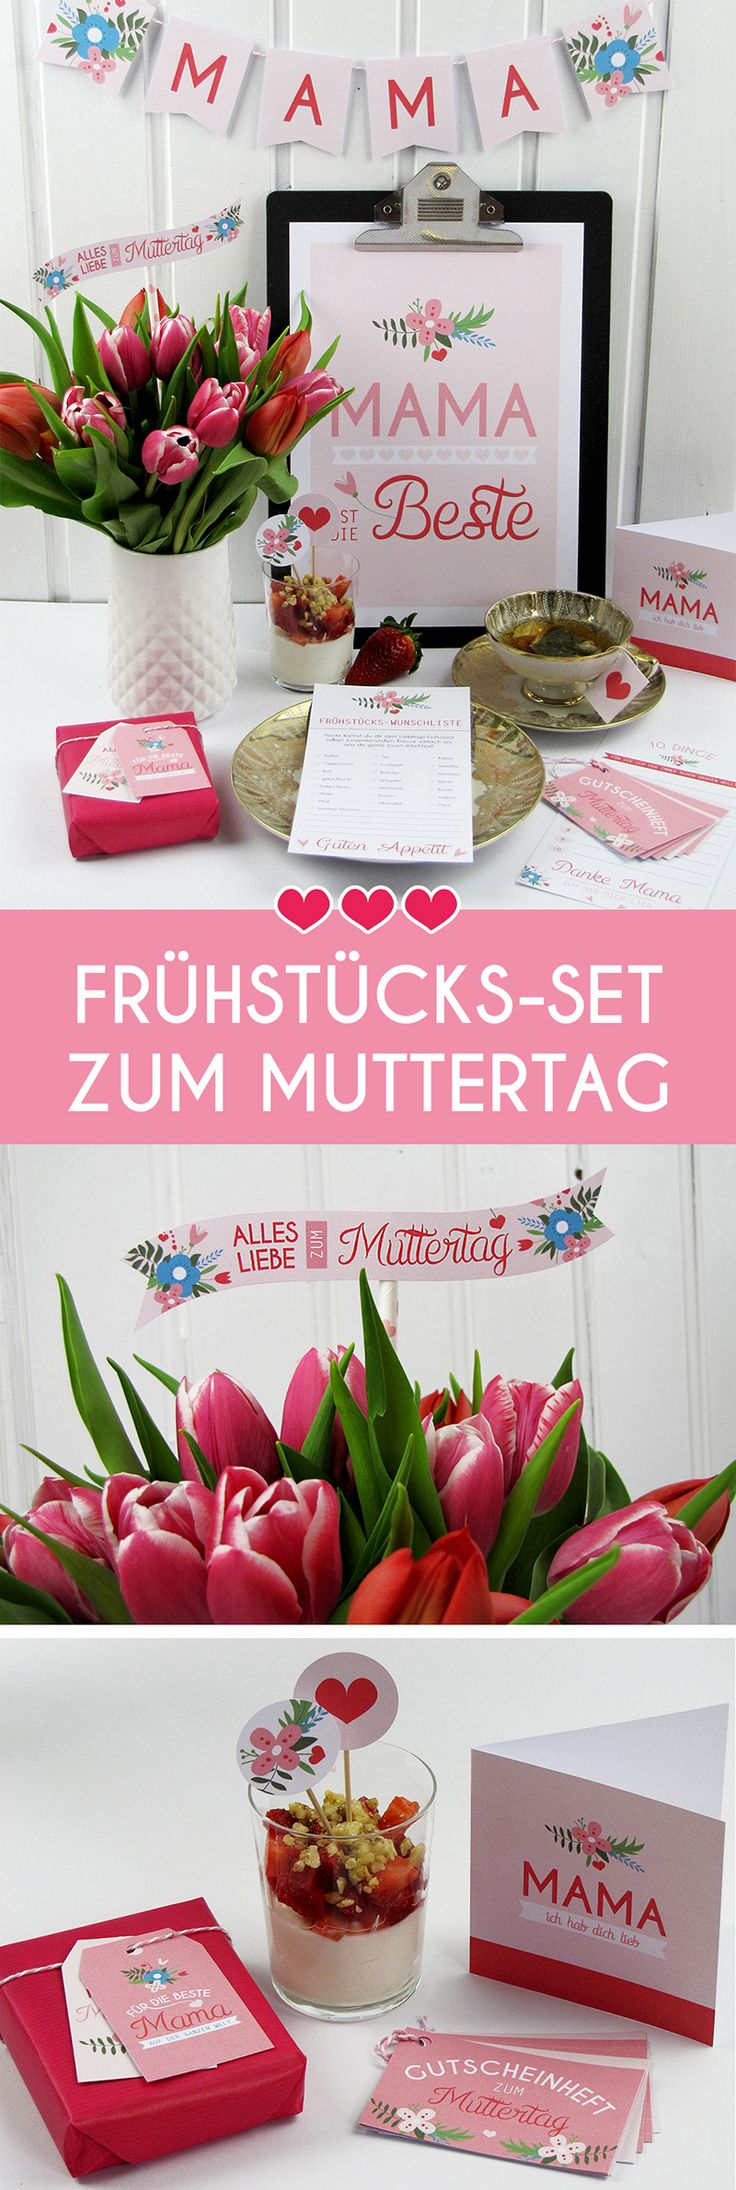 104 best geschenkideen zum muttertag images on pinterest - Muttertag pinterest ...